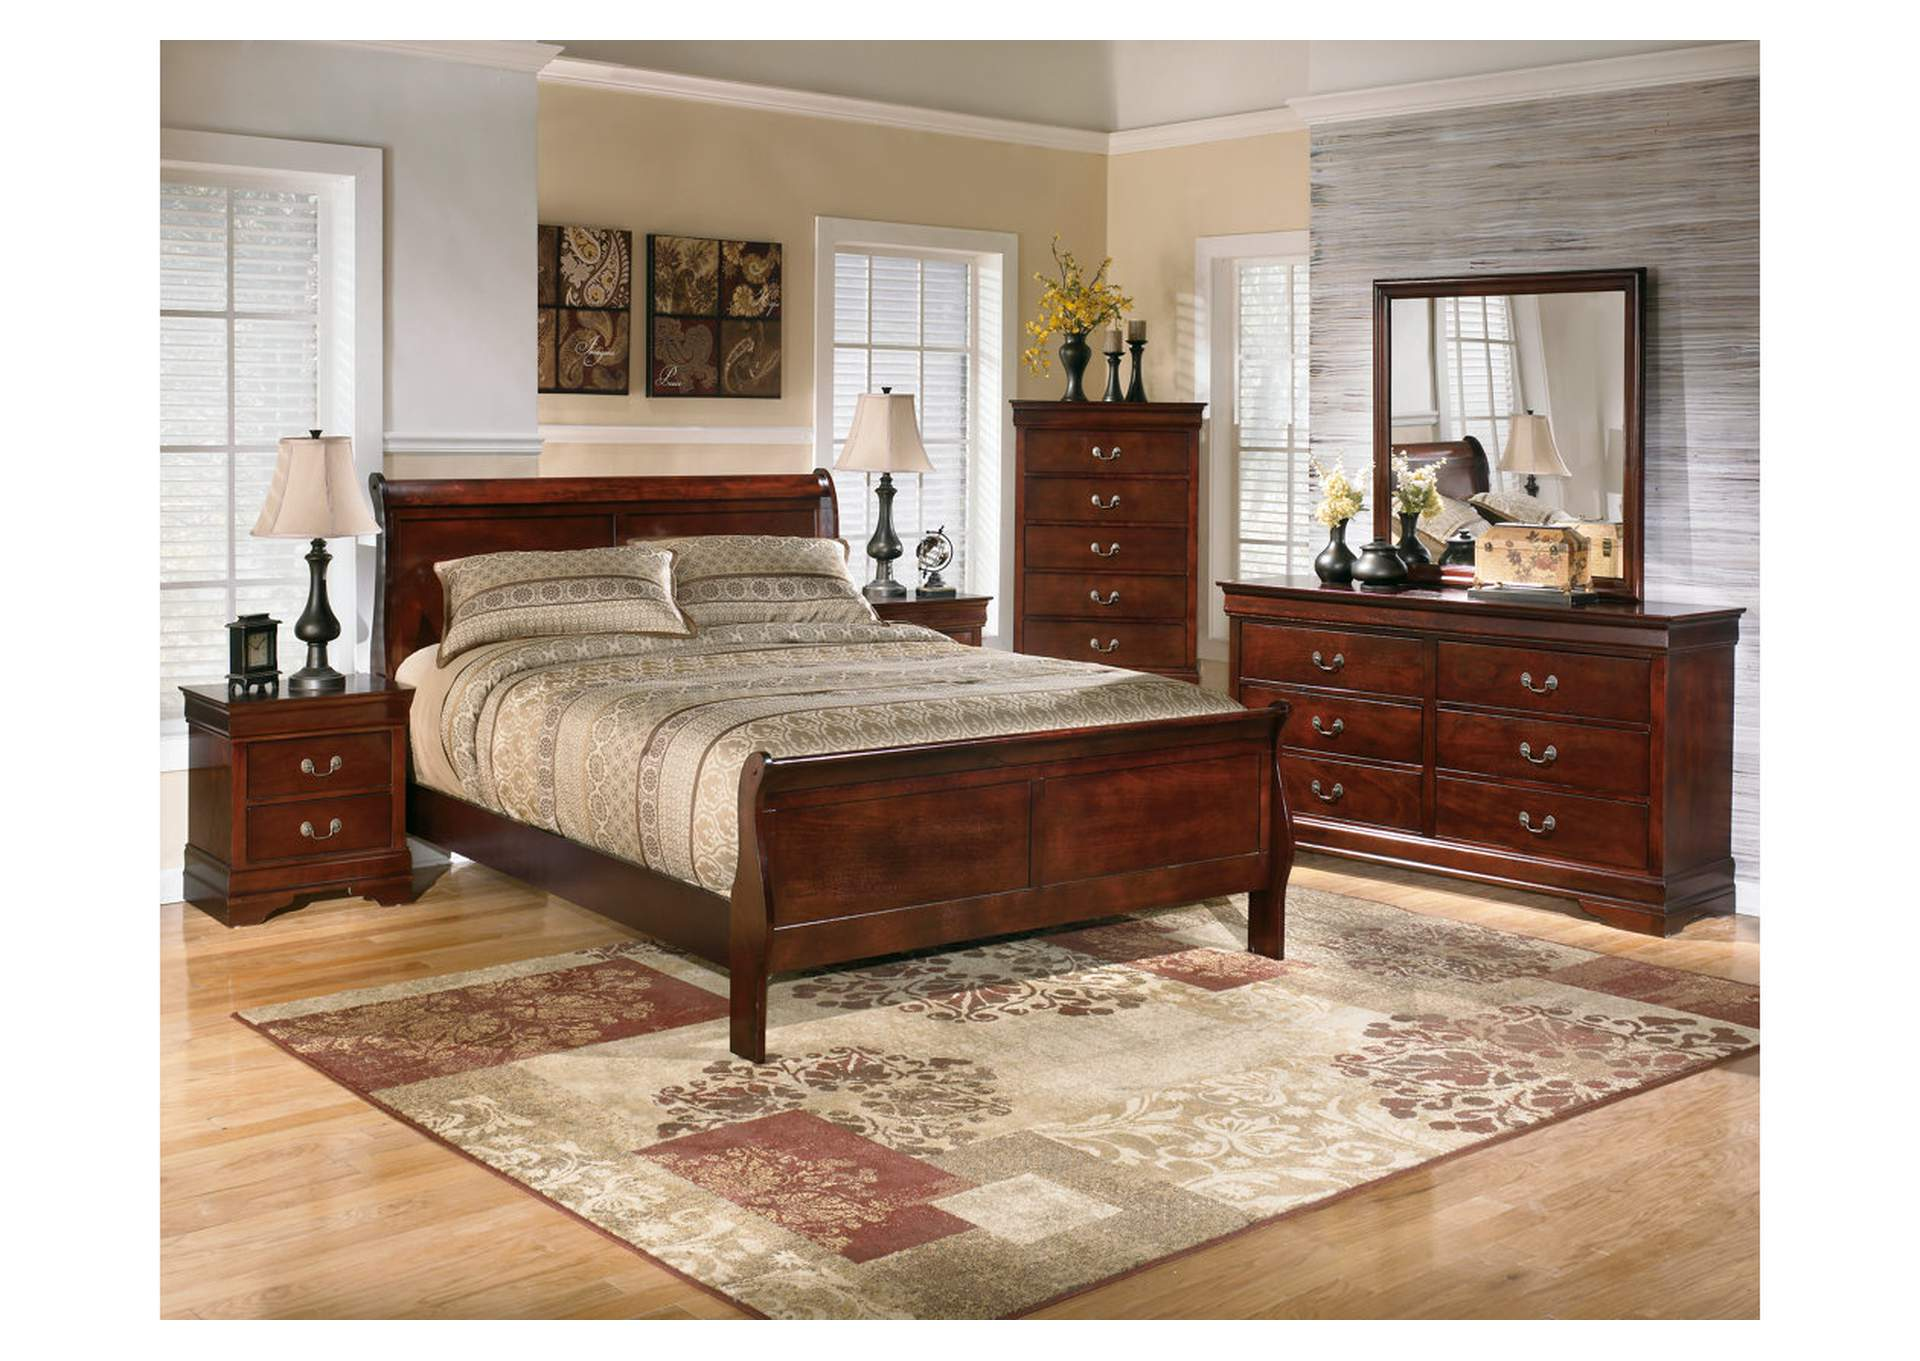 Alisdair Queen Sleigh Bed w/Dresser & Mirror,Signature Design by Ashley